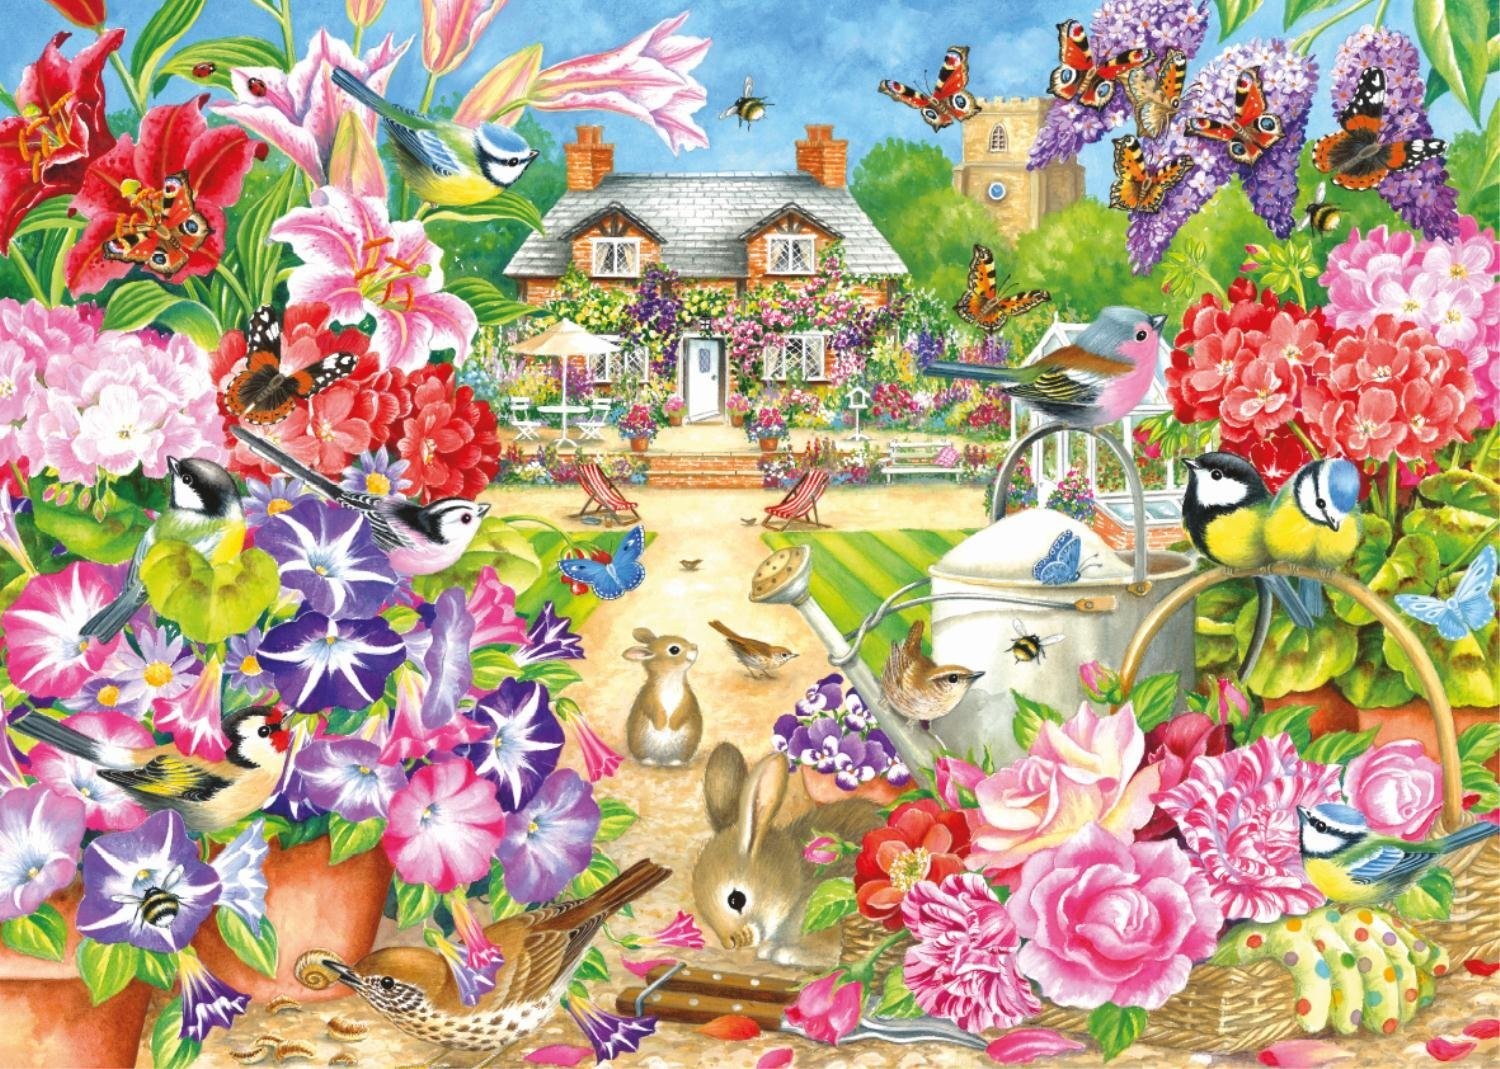 falcon-claire-comerford-summer-garden-1000-teile-puzzle-jumbo-11171